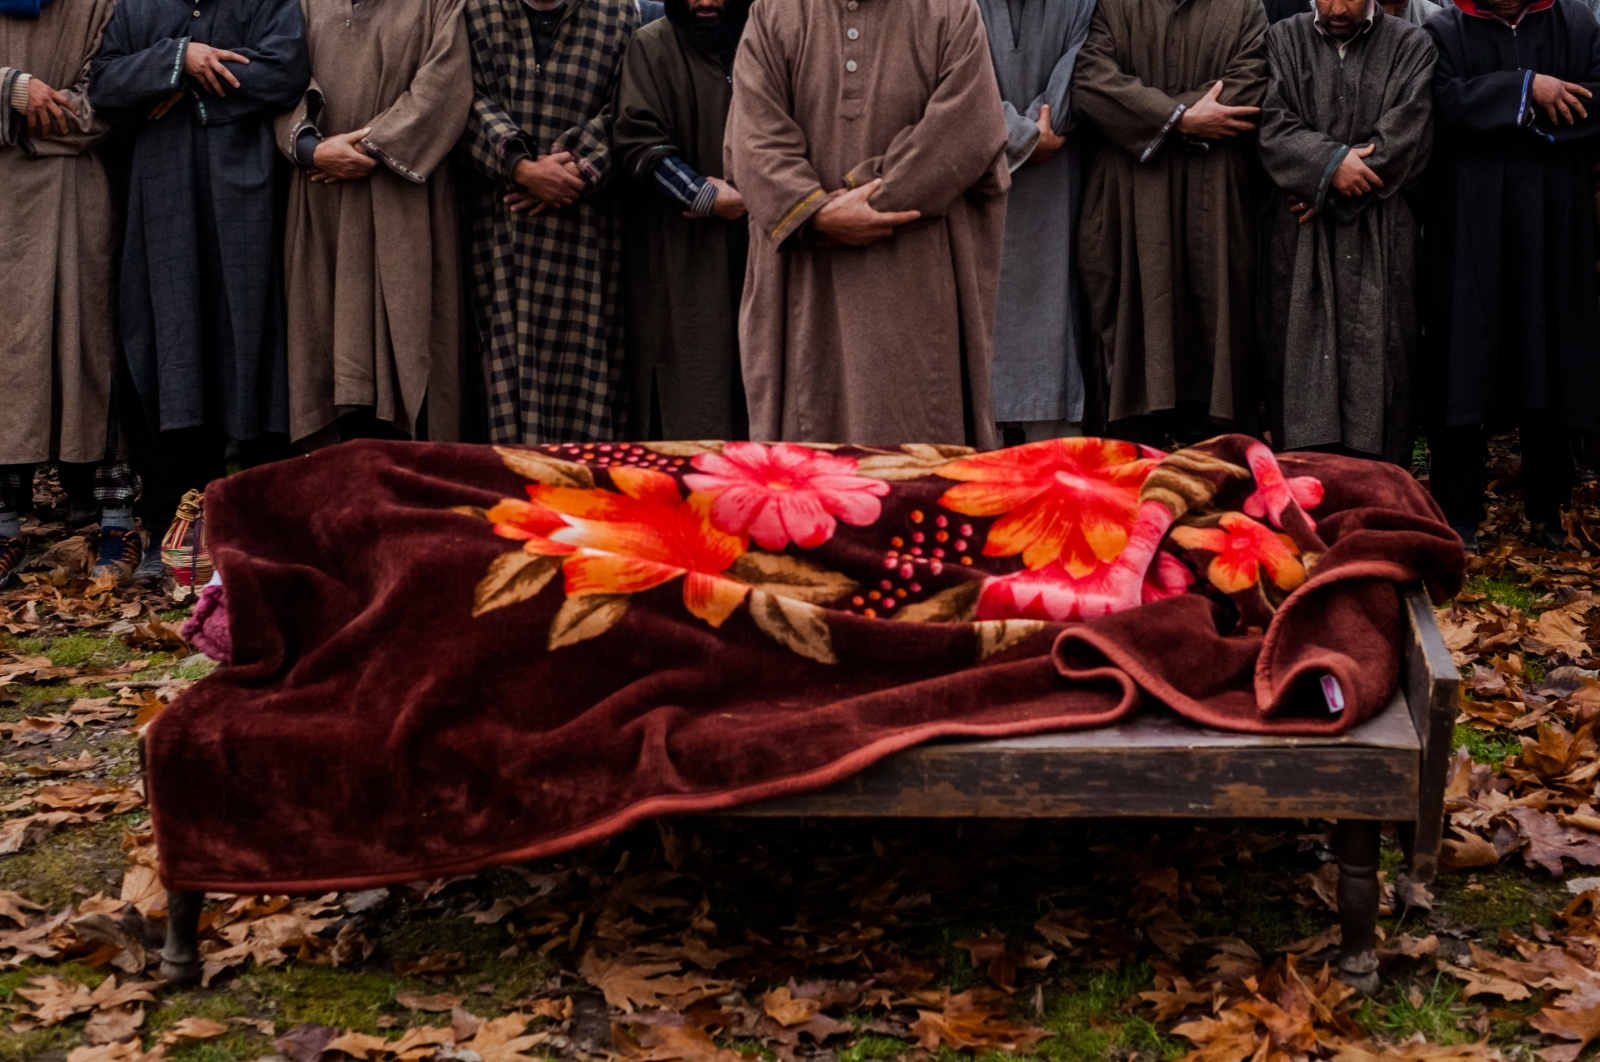 Kashmiri mourners offer prayers during the funeral of Rasiq Ahmed Khan, aged around 22, and who was found shot to death, in Watchohallan village in south Kashmir's Shopian district some 80 kms from Srinagar, on December 14, 2015. Raisq, who disappeared on December 13, was found shot to death by gunmen who local residents report were members of the Indian police Special Operations Group.